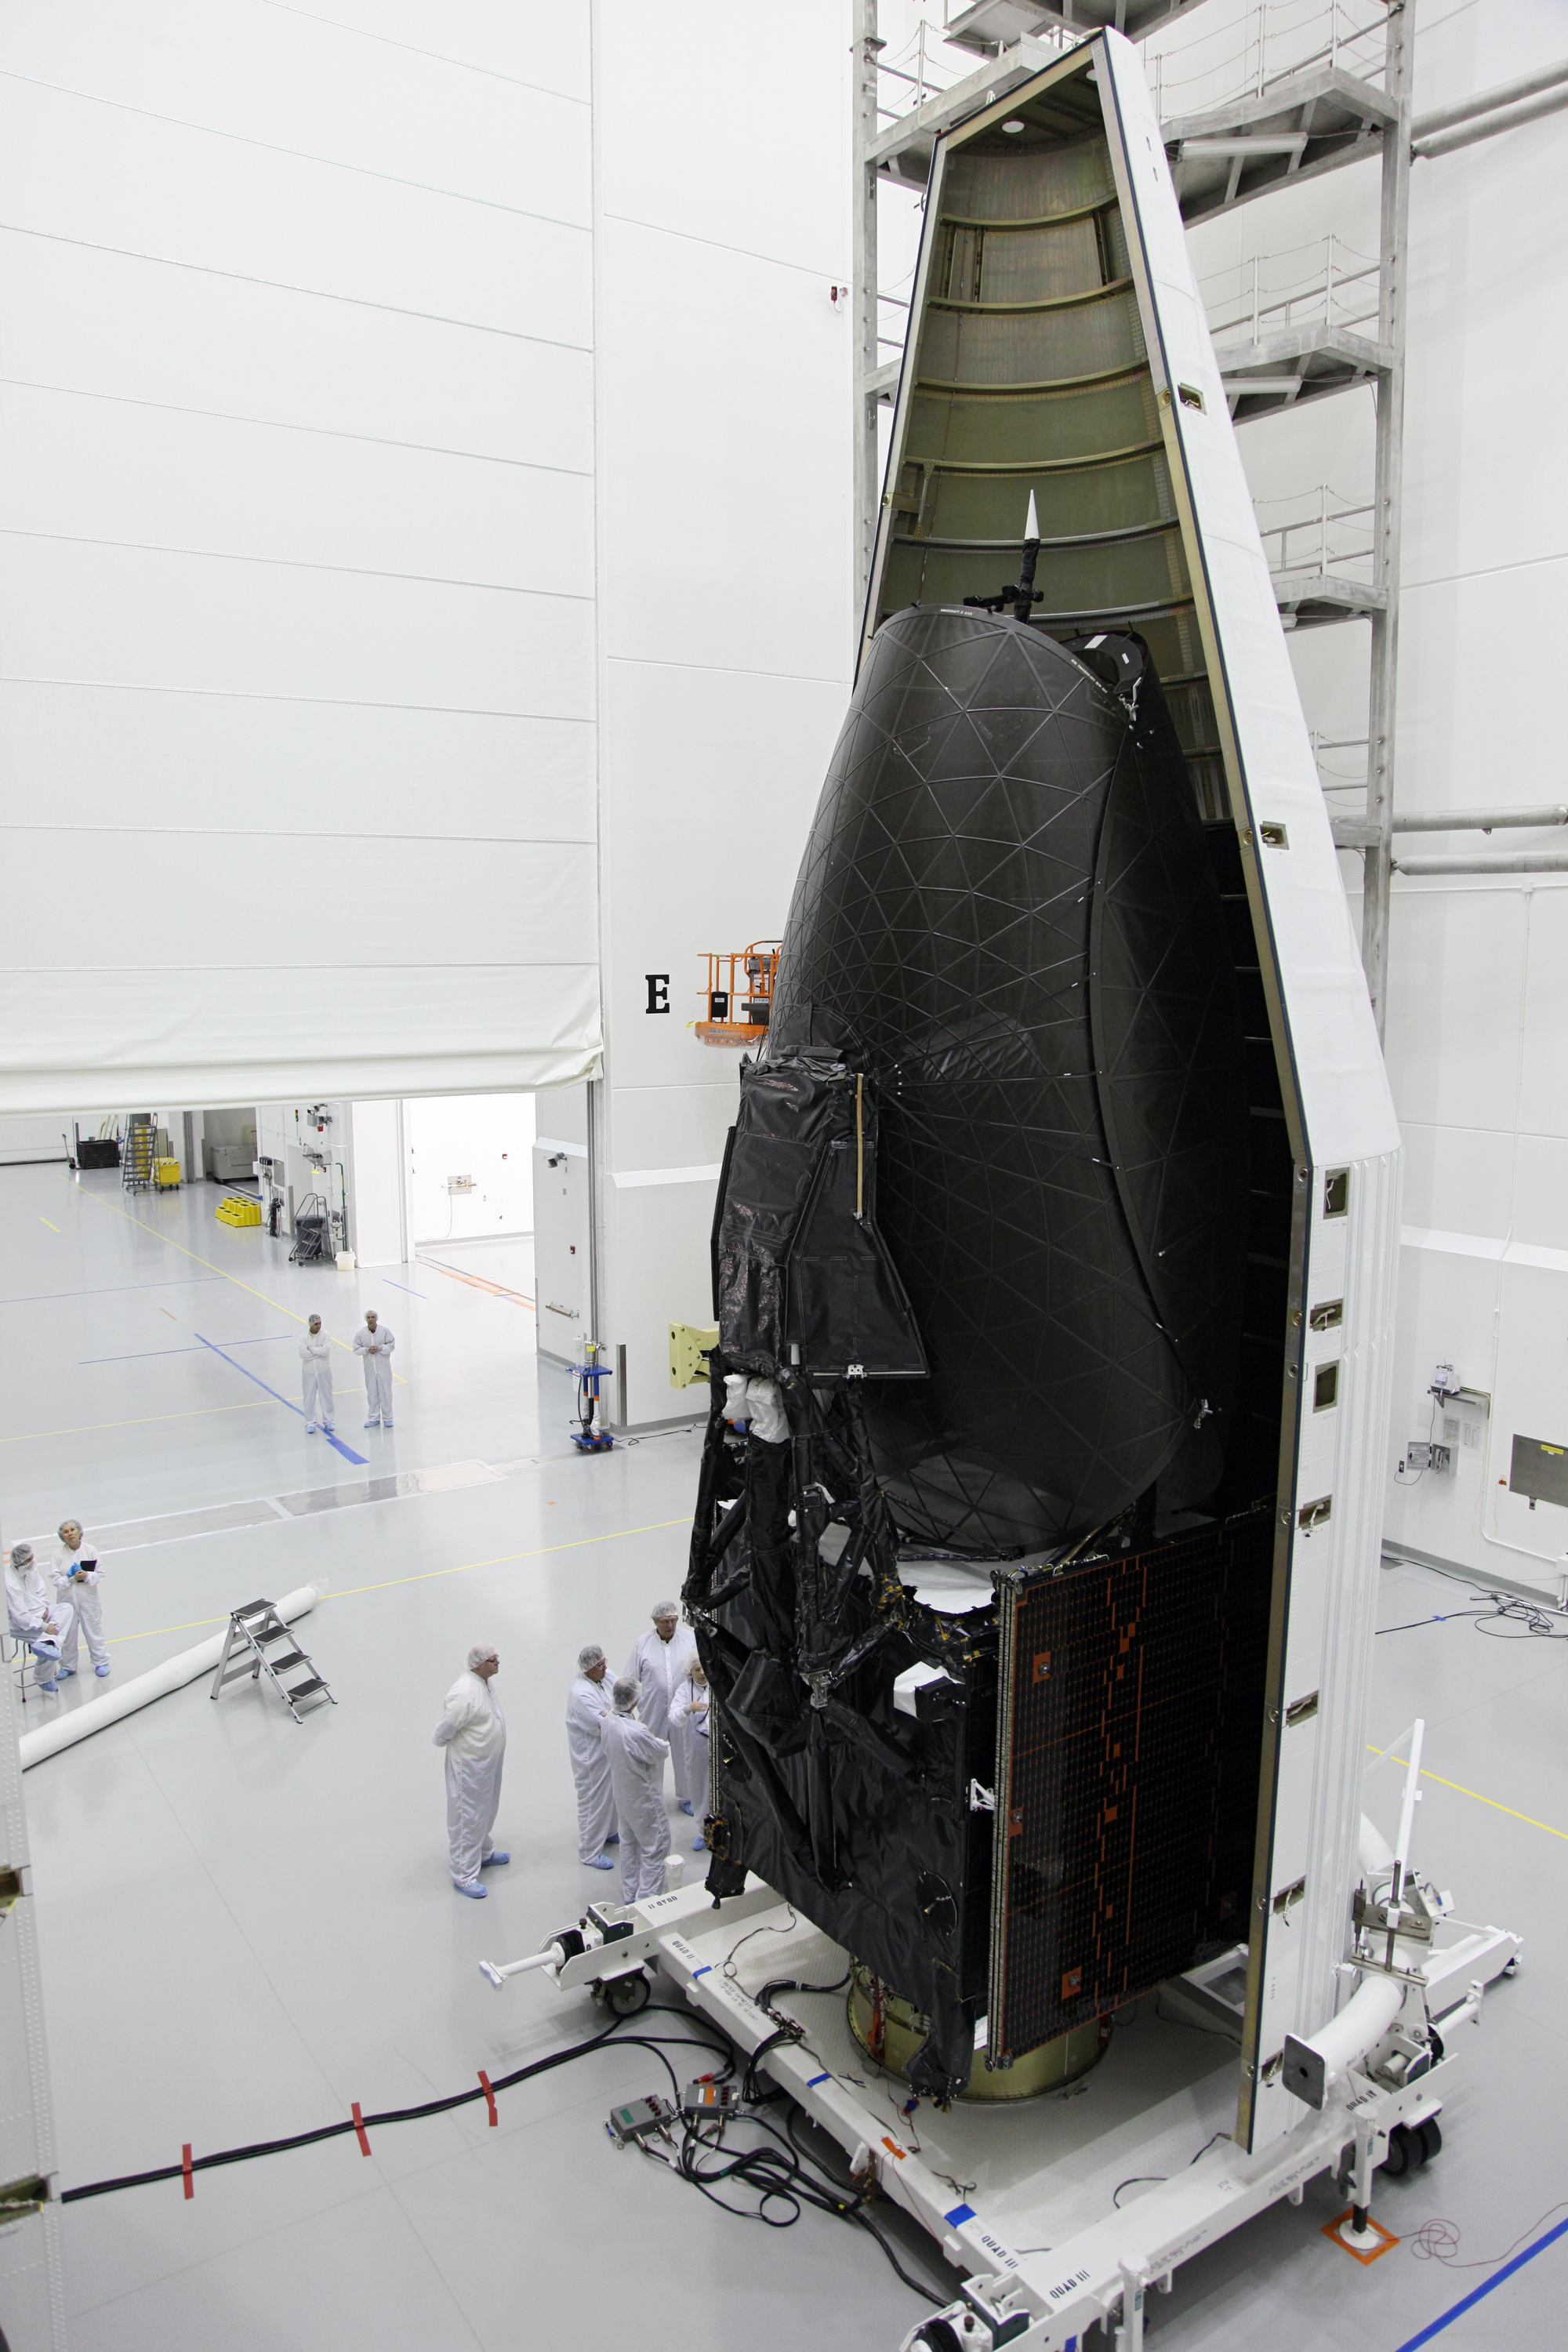 Technicians Work on NASA's Tracking and Data Relay Satellite